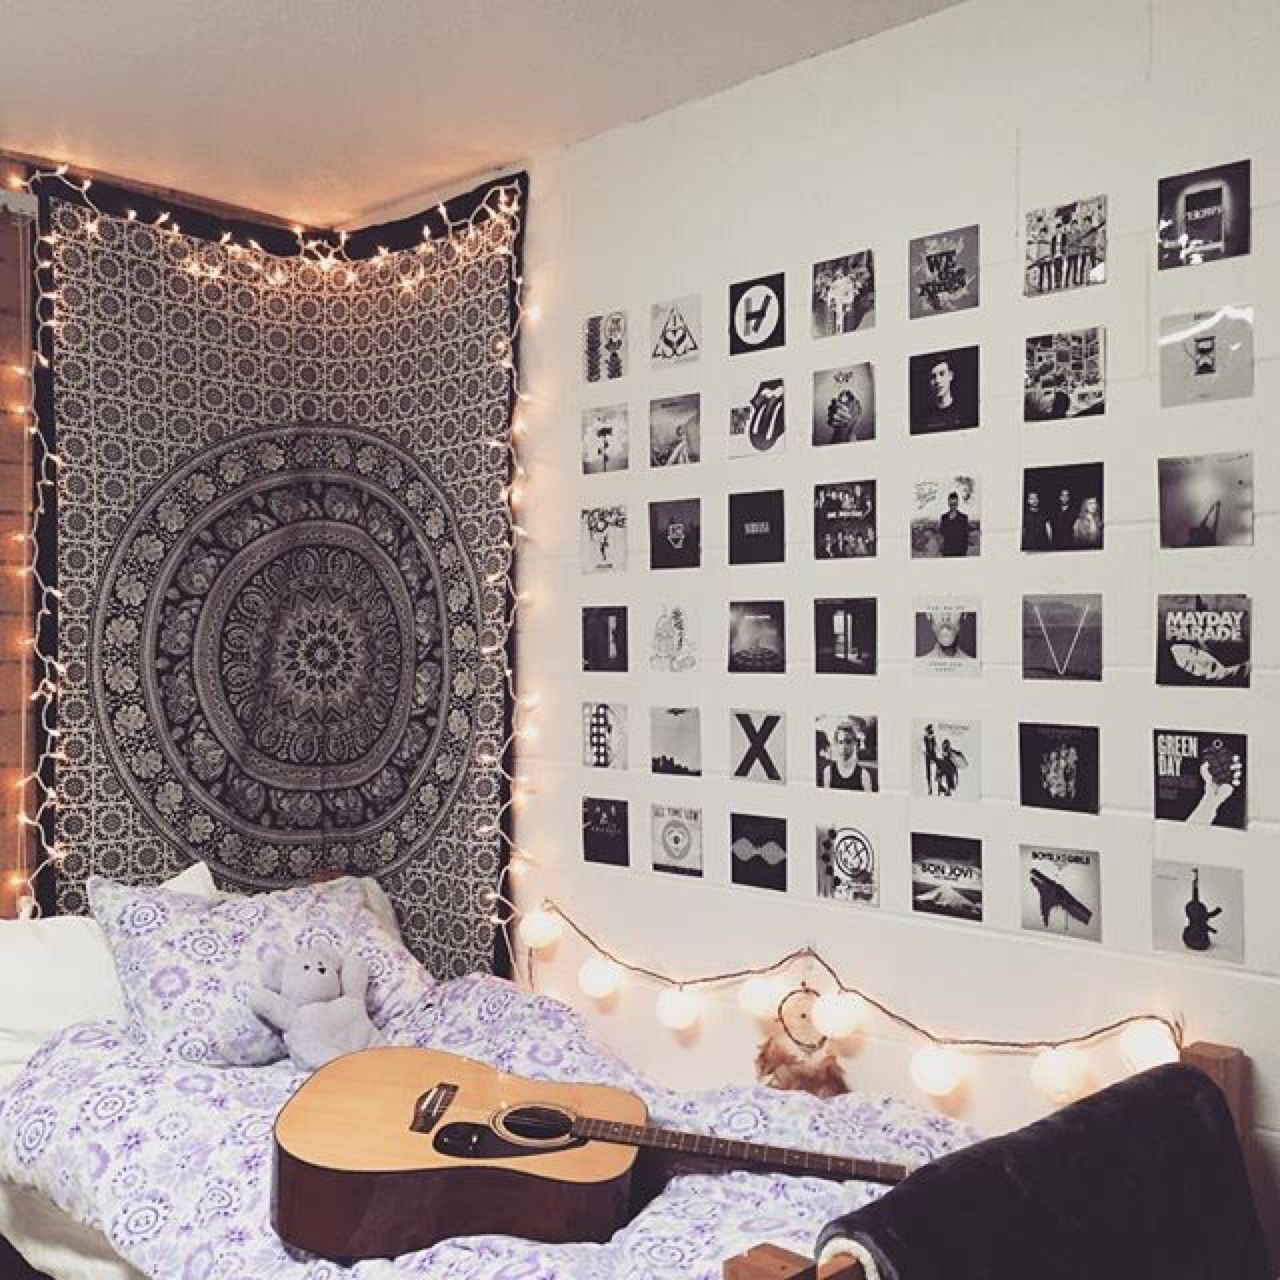 Diy Room Decor Hipster source myroomspo tapestry bedroom tumblr bedroom decoration room